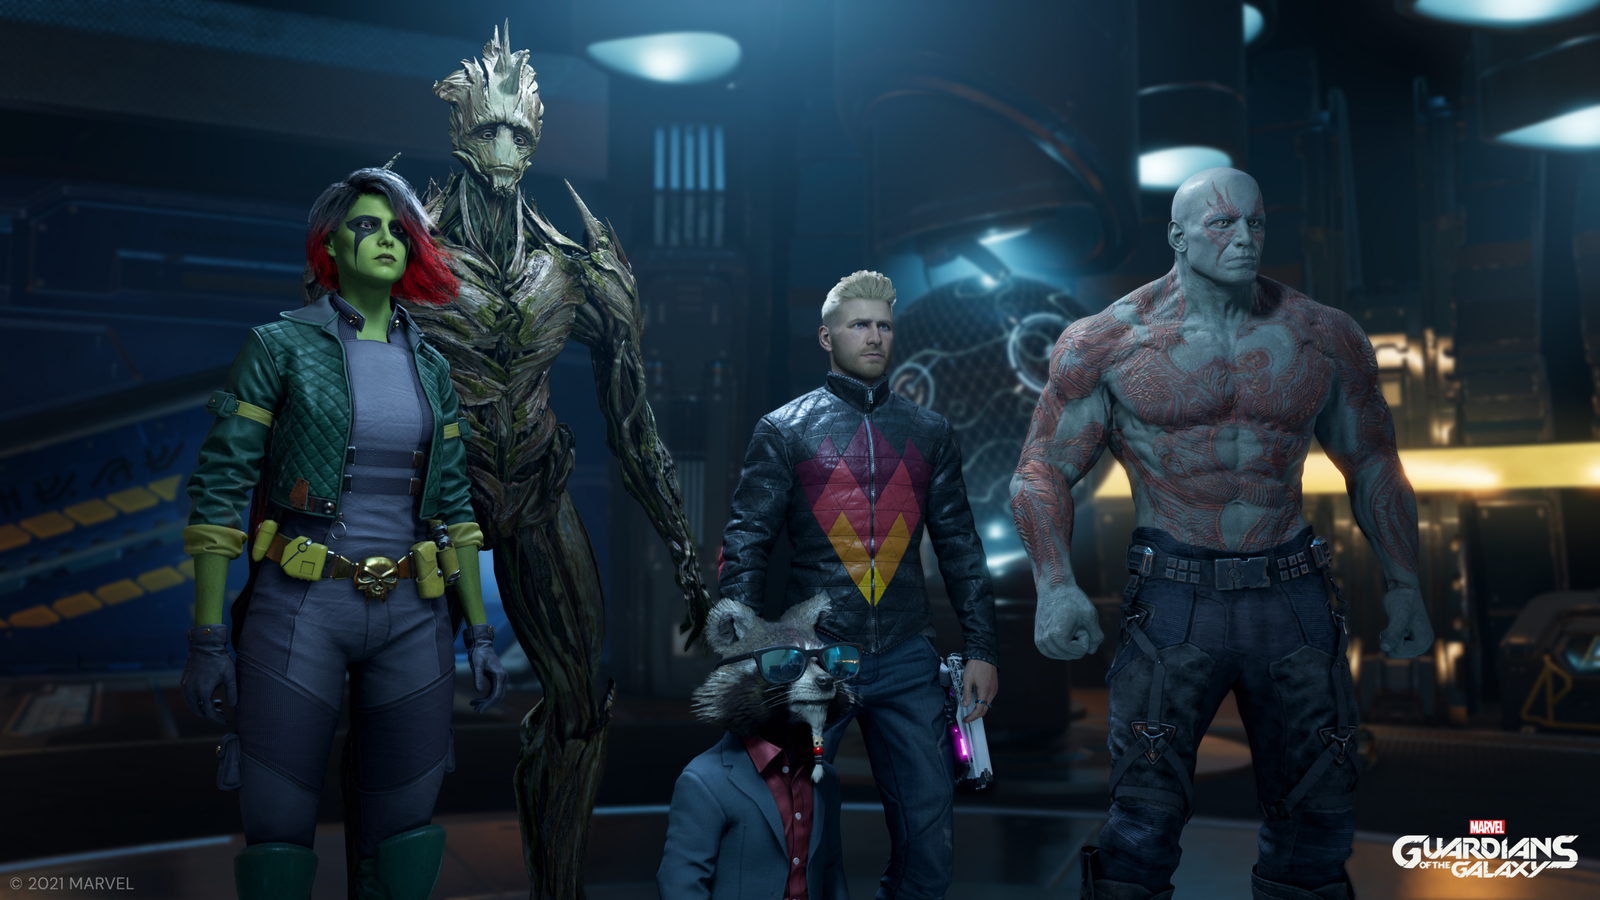 Guardians Of The Galaxy breaks the movie-game curse